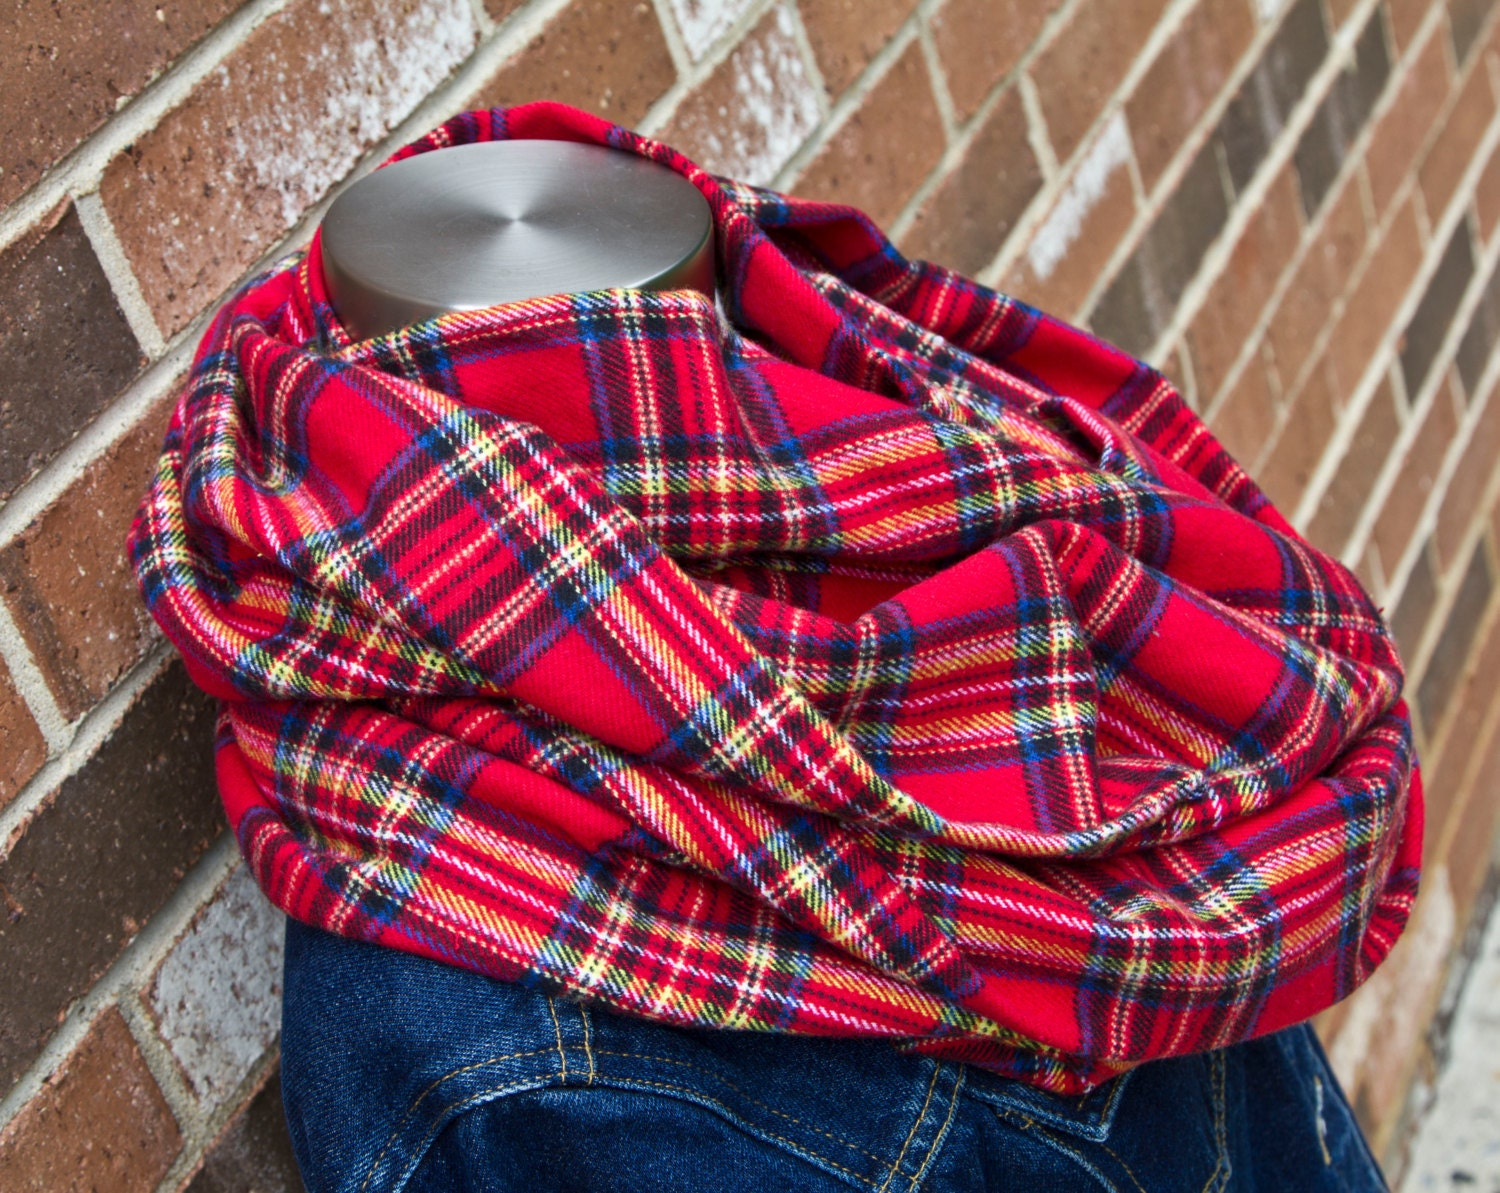 Scarfand's Plaid & Tartan Winter Infinity Scarf Wraps Shop Best Sellers· Deals of the Day· Fast Shipping· Read Ratings & Reviews.